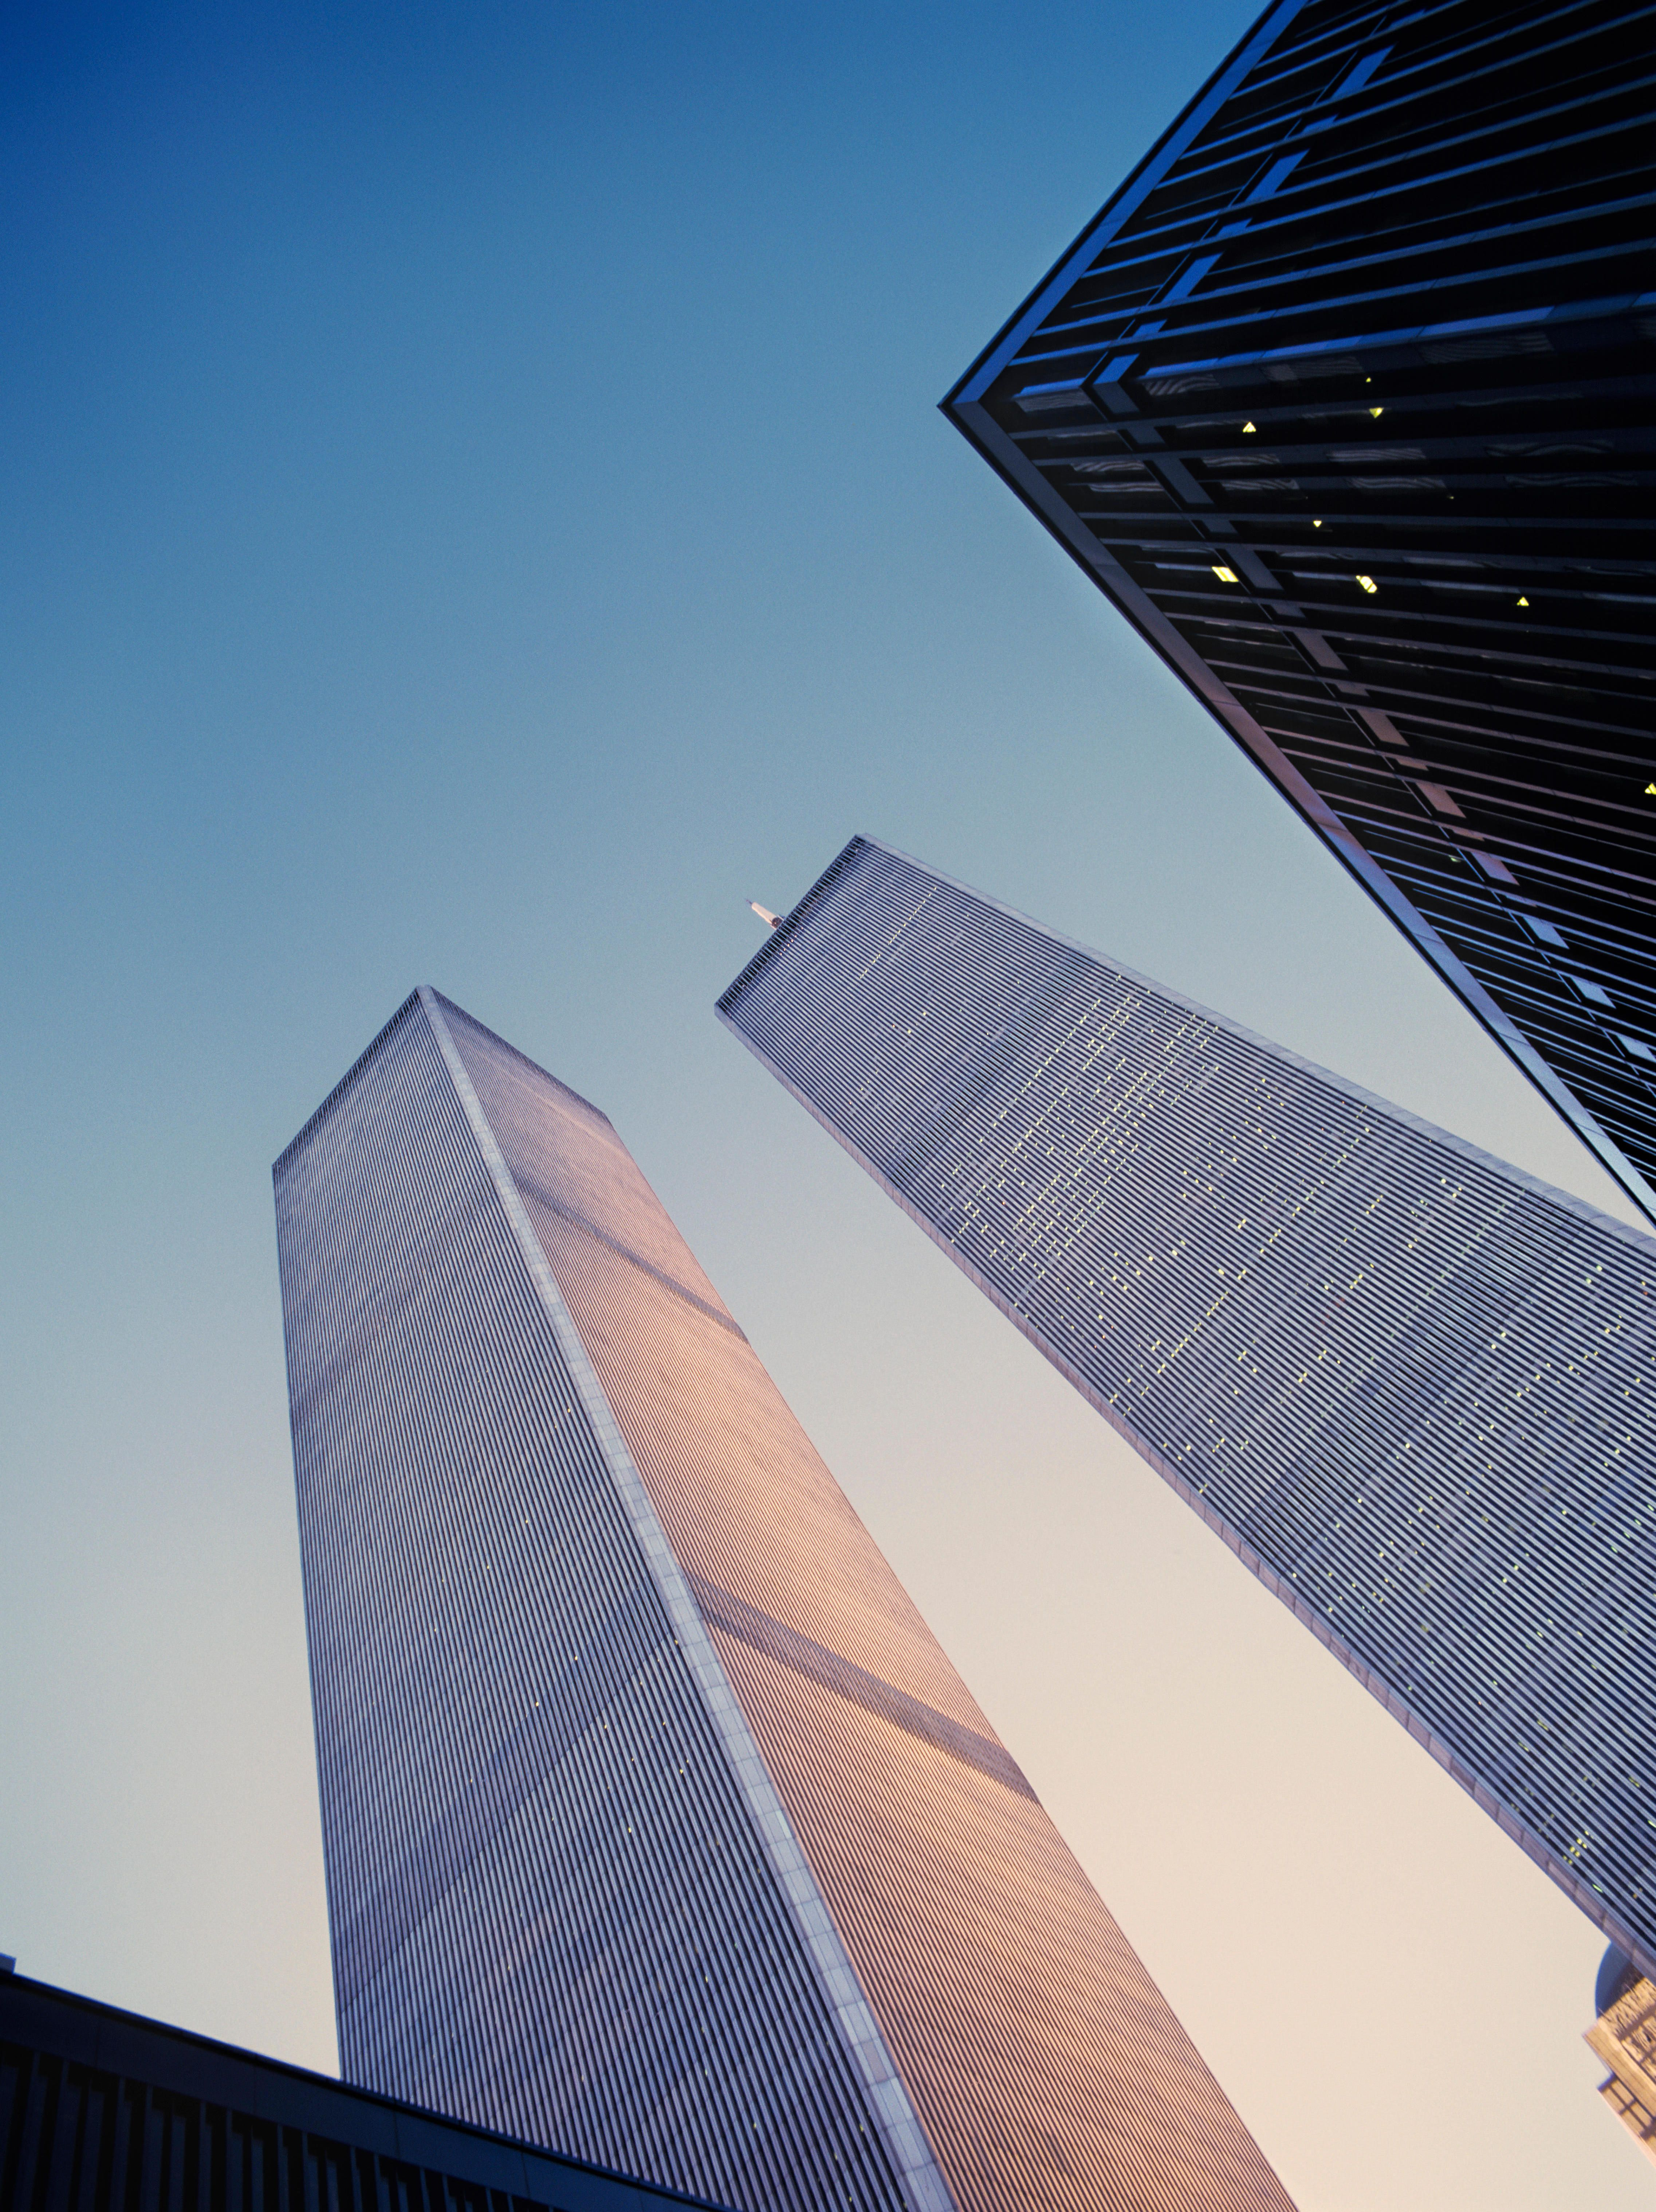 Todays Document • The Twin Towers of the World Trade